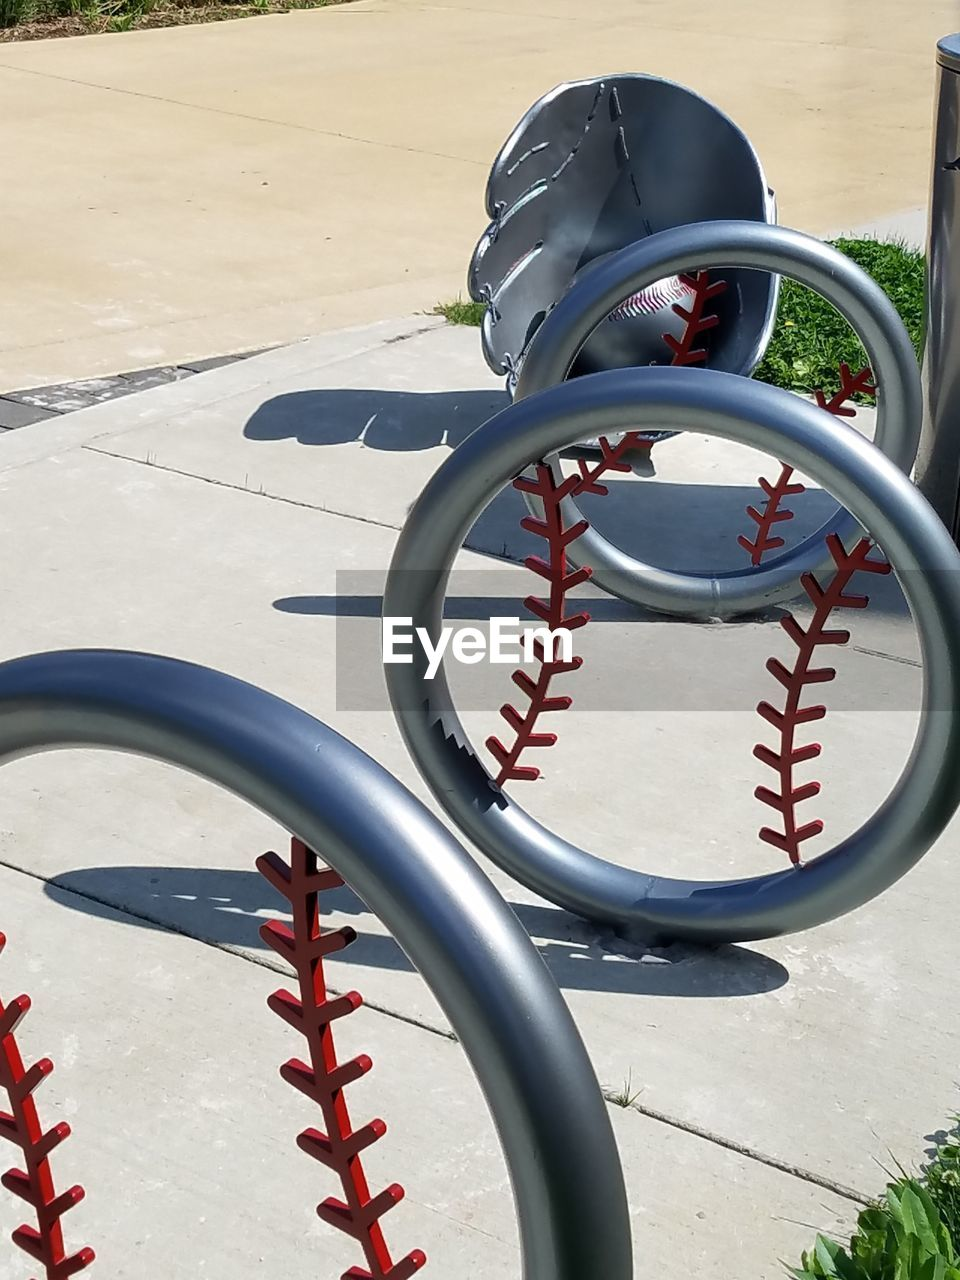 sunlight, day, high angle view, outdoors, no people, bicycle rack, shadow, spiral, bicycle, nature, close-up